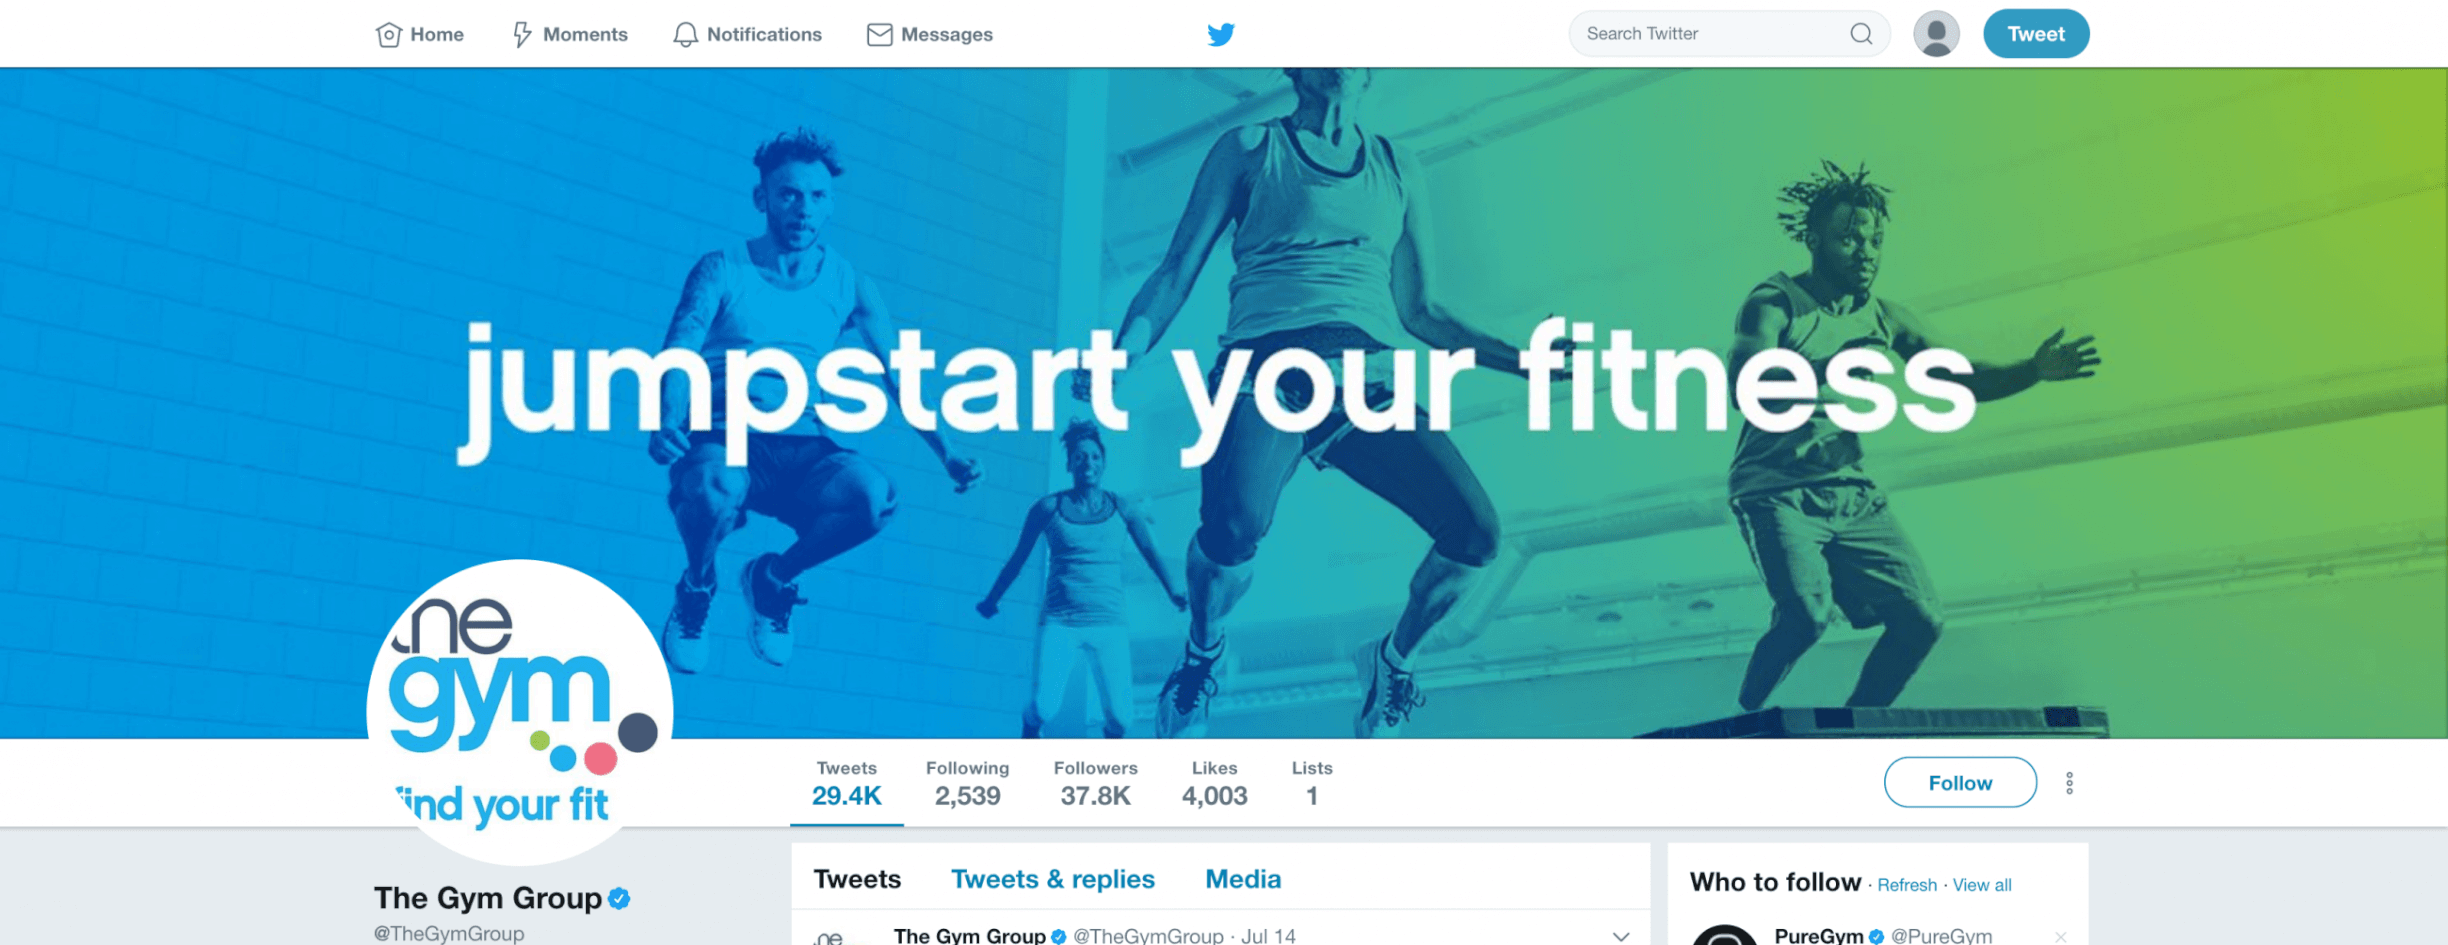 Screen Shot 2017 07 17 at 3.34.27 pm 2 - Top 5 social media marketing tips for gyms and personal trainers health-fitness